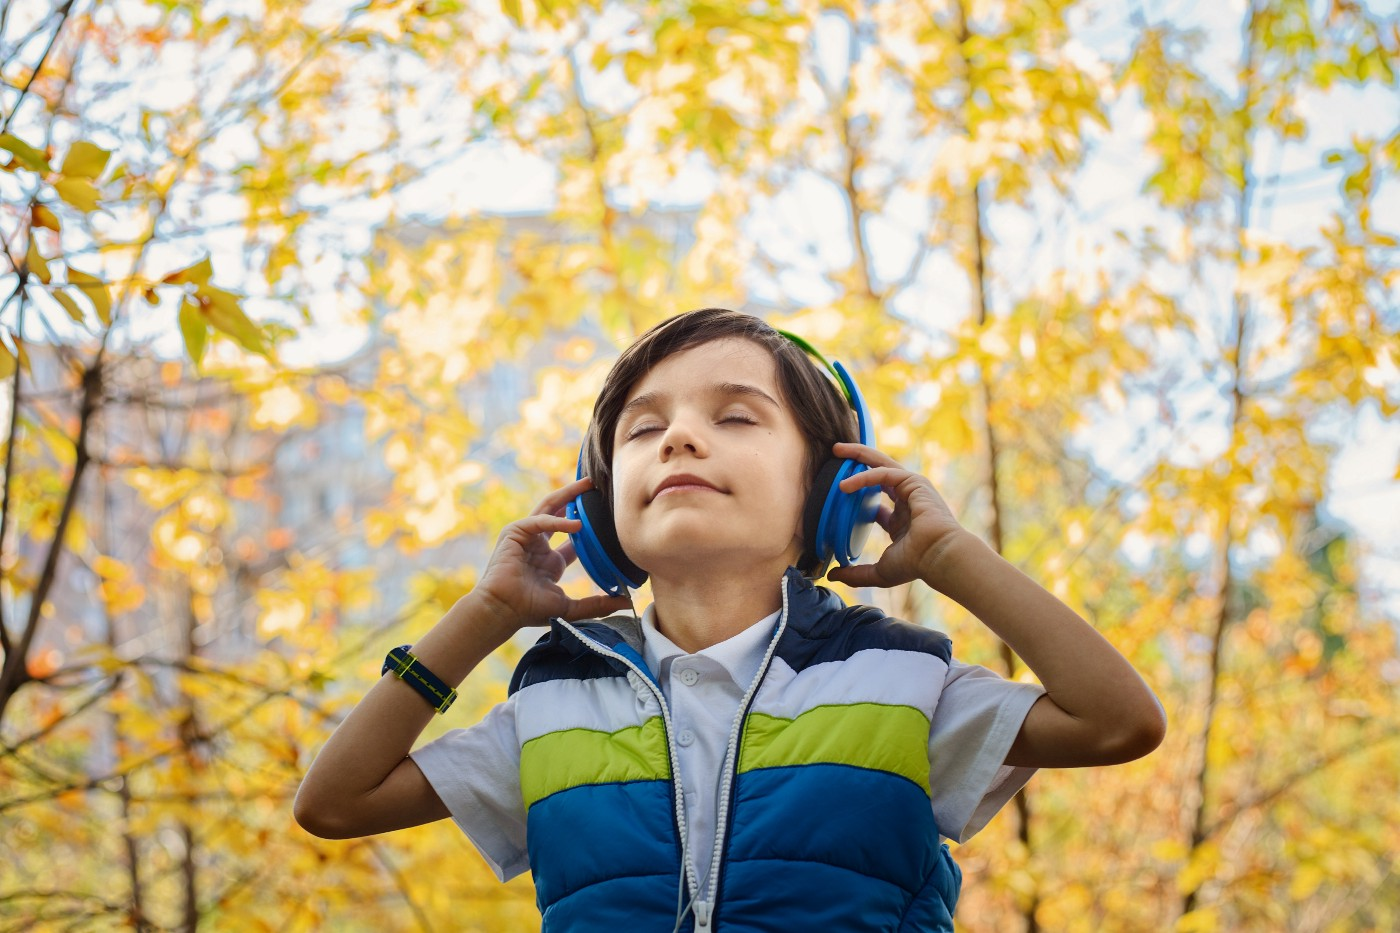 child listening to music through headphones with eyes closed